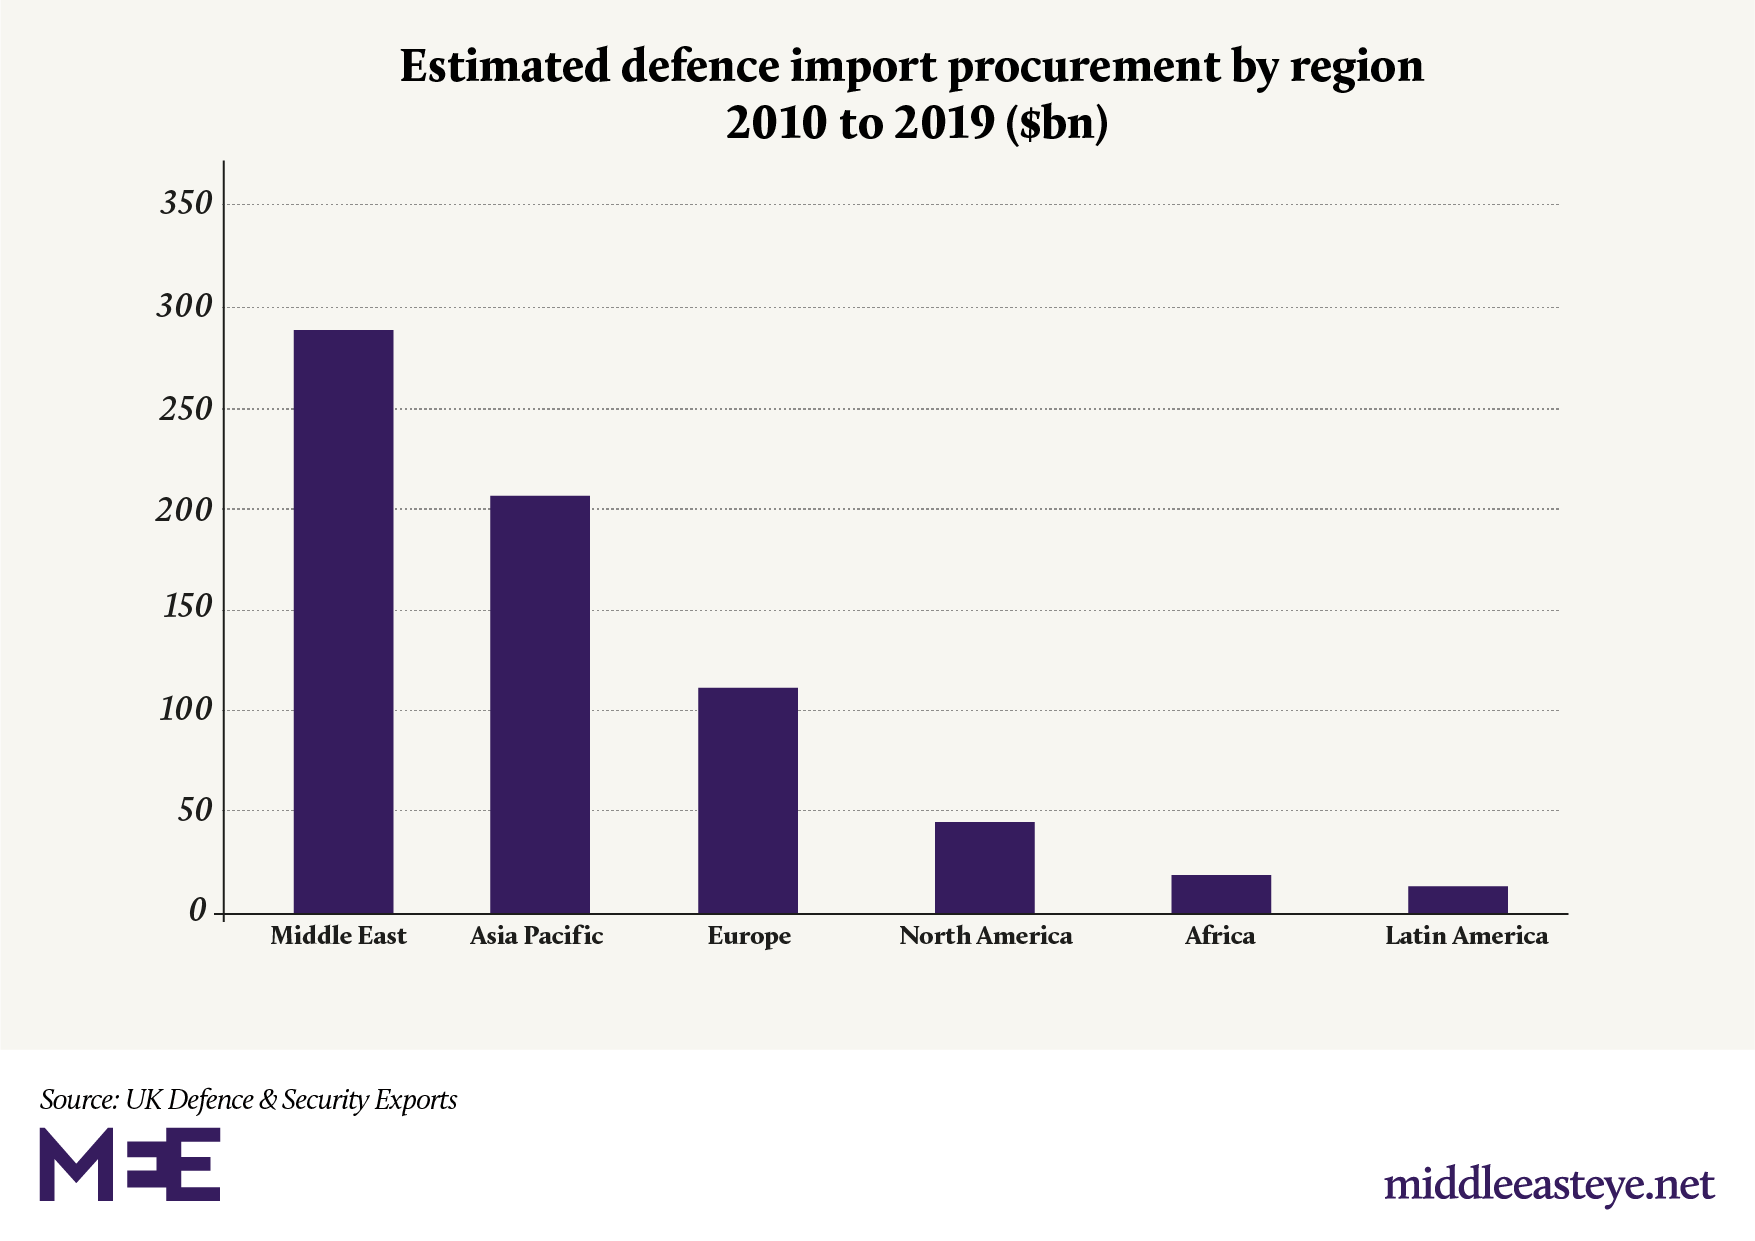 https://www.middleeasteye.net/sites/default/files/defence%20imports%20by%20region.png